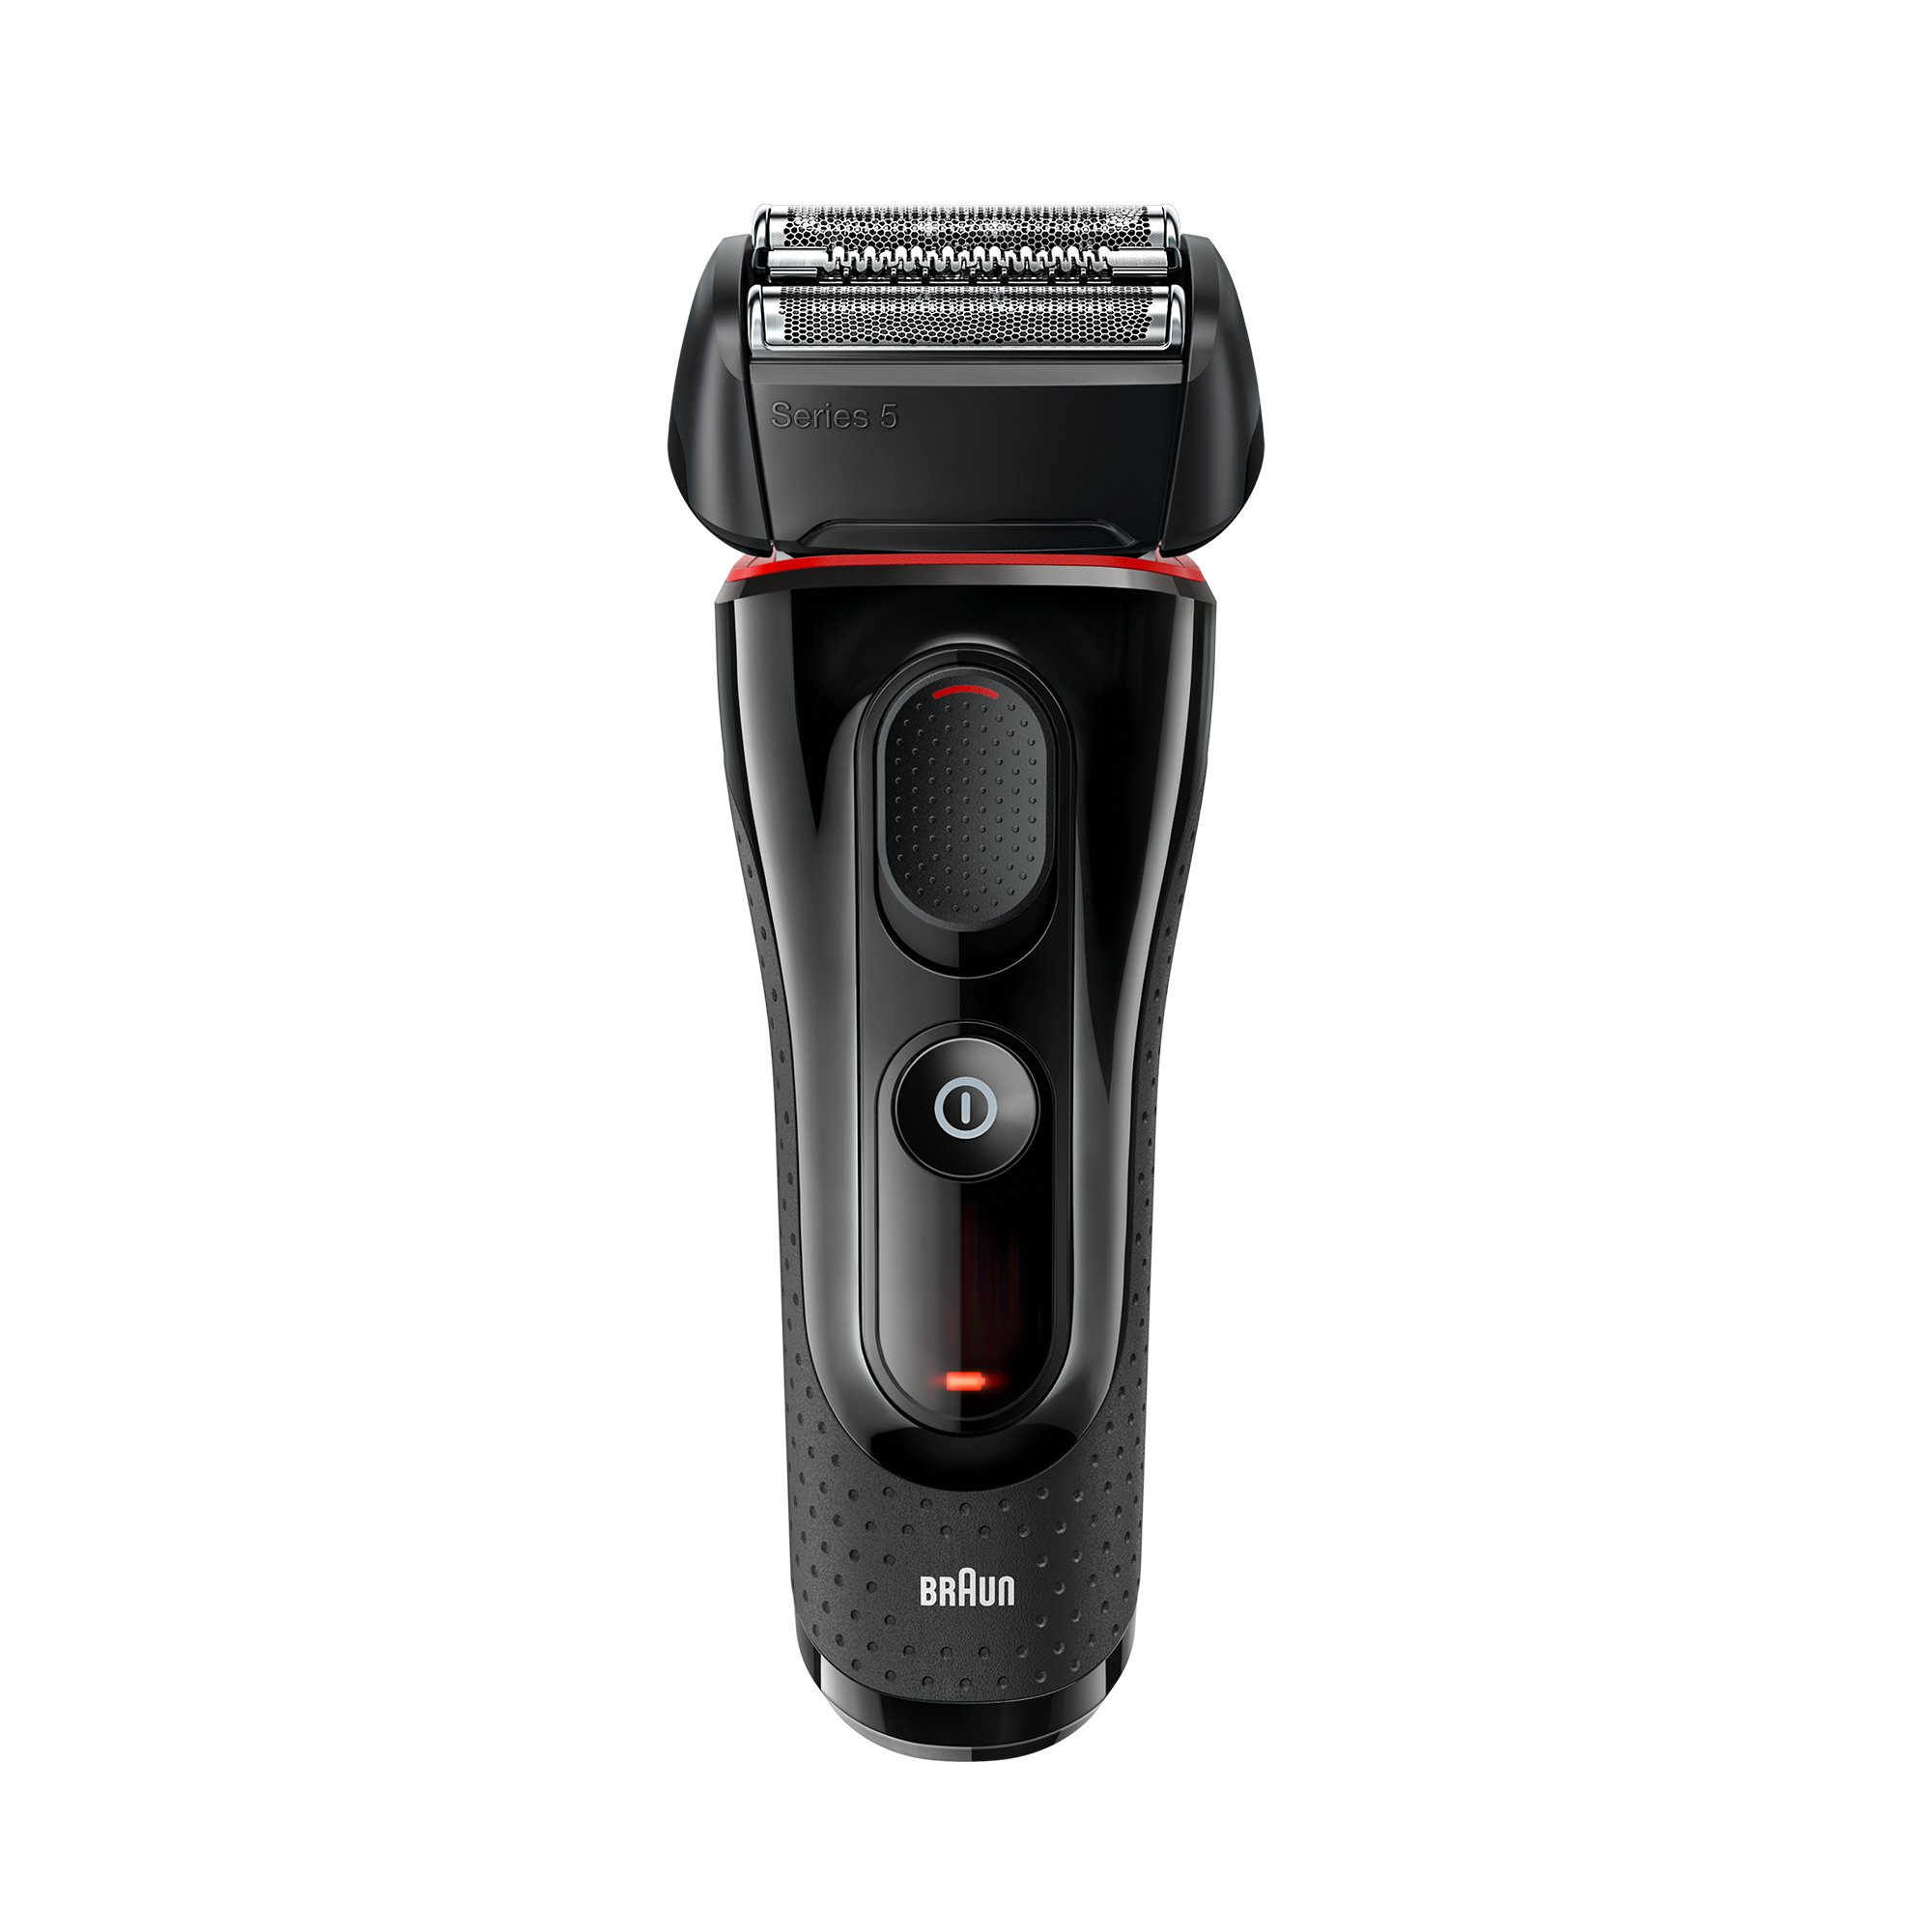 Braun Series 5 5030s Men's Electric Razor/Electric Foil Shaver, Pop Up Precision Trimmer, Rechargeable & Cordless by Braun